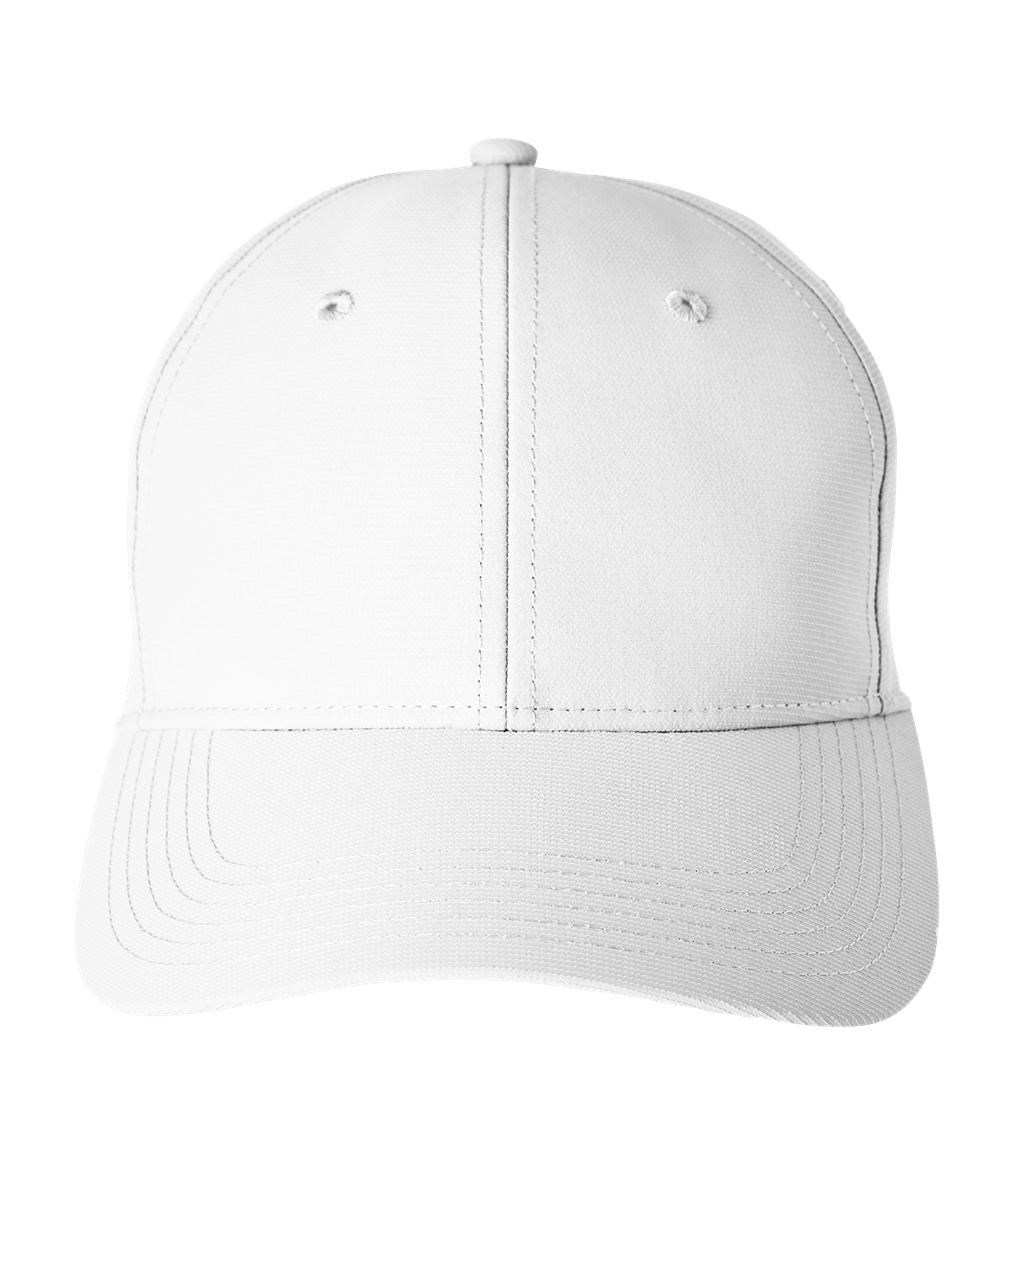 Picture of Puma Golf Adult Pounce Adjustable Cap